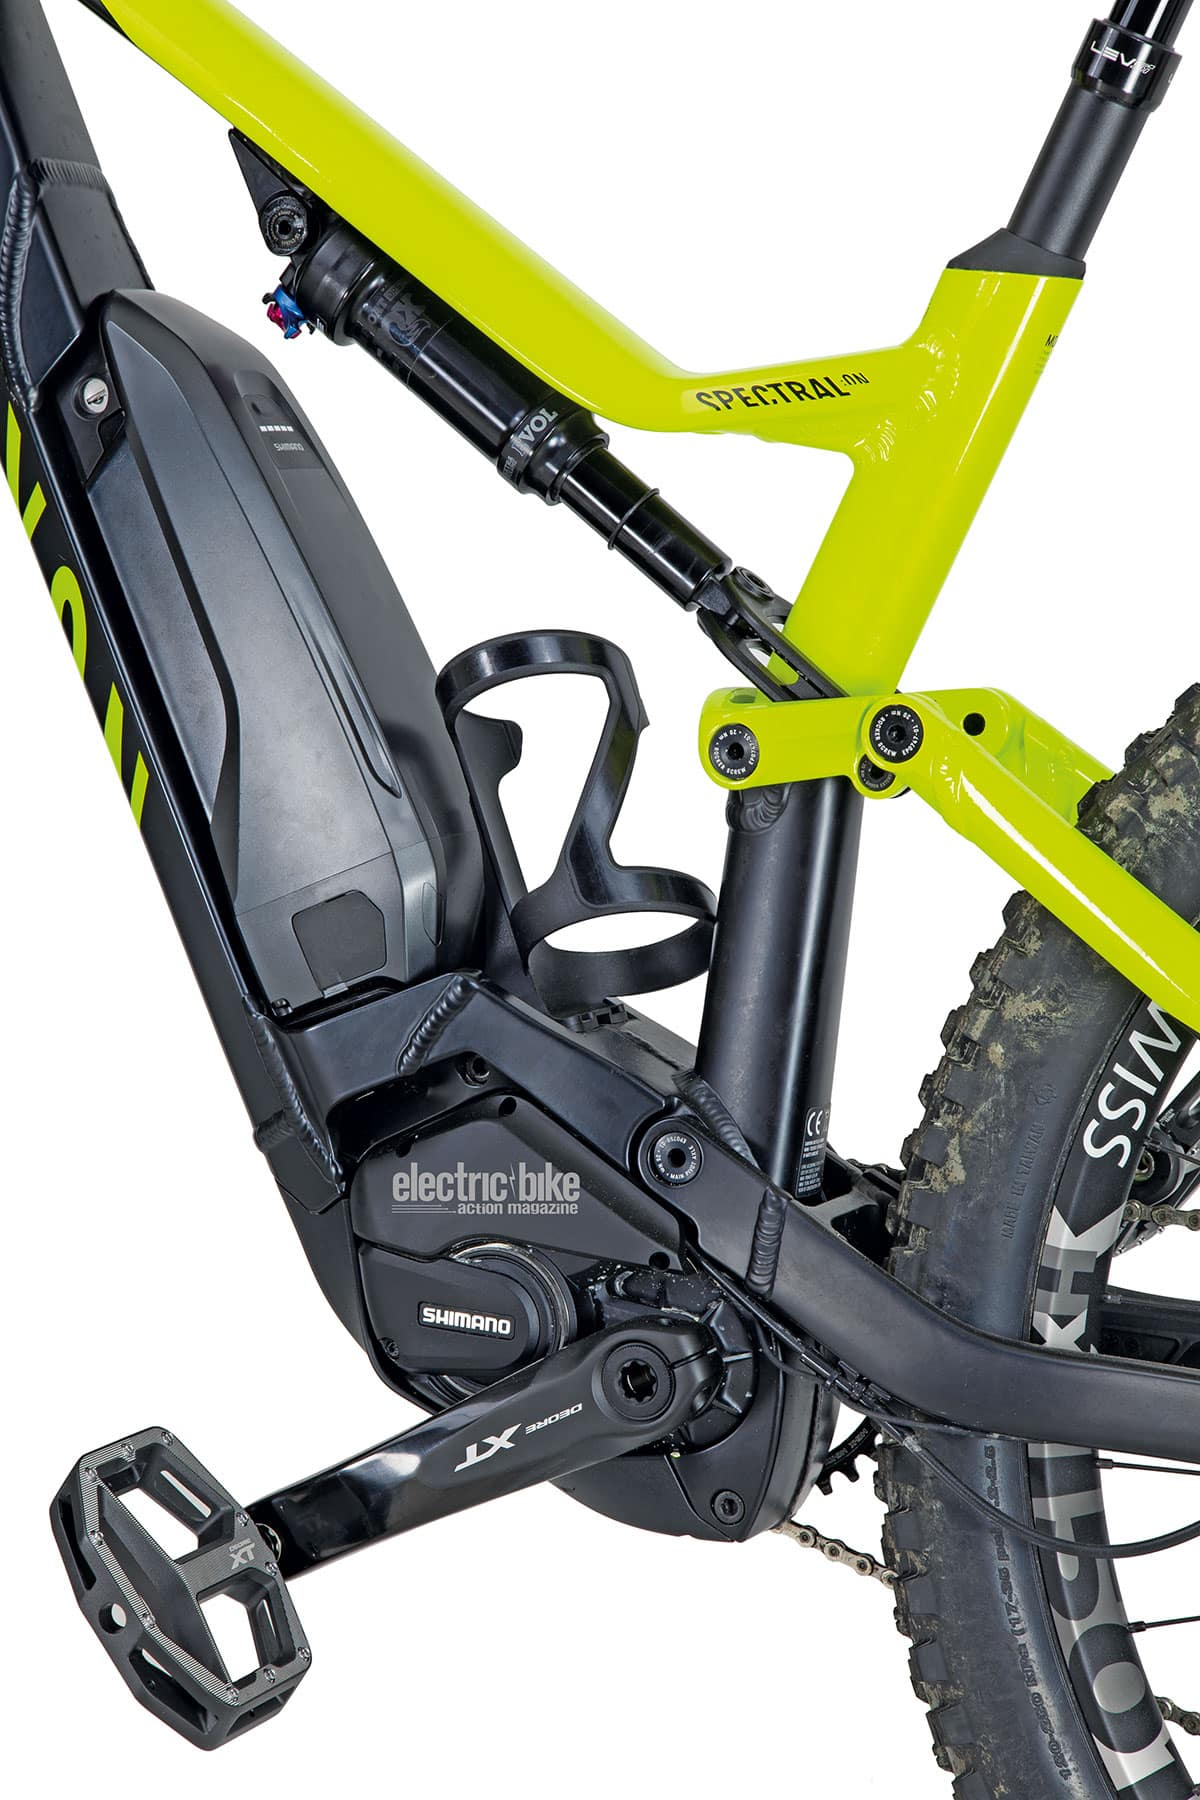 Bike Test - Canyon Spectral: ON 8 0 | Electric Bike Action